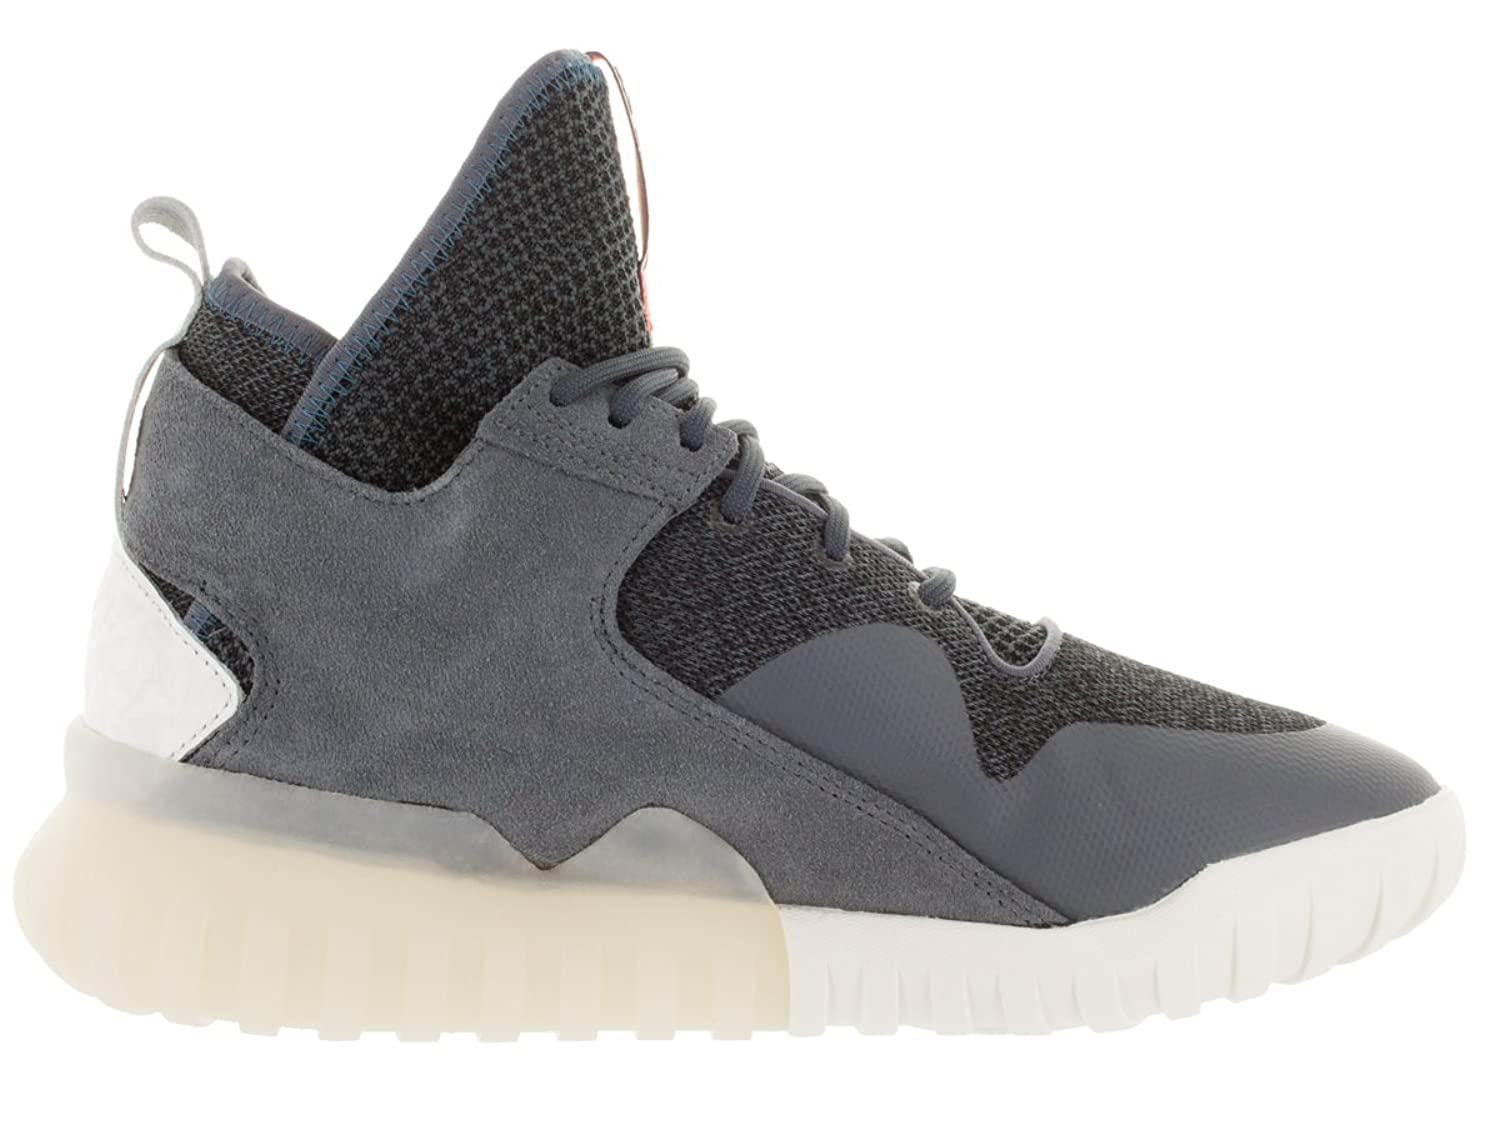 Adidas Tubular Basketball